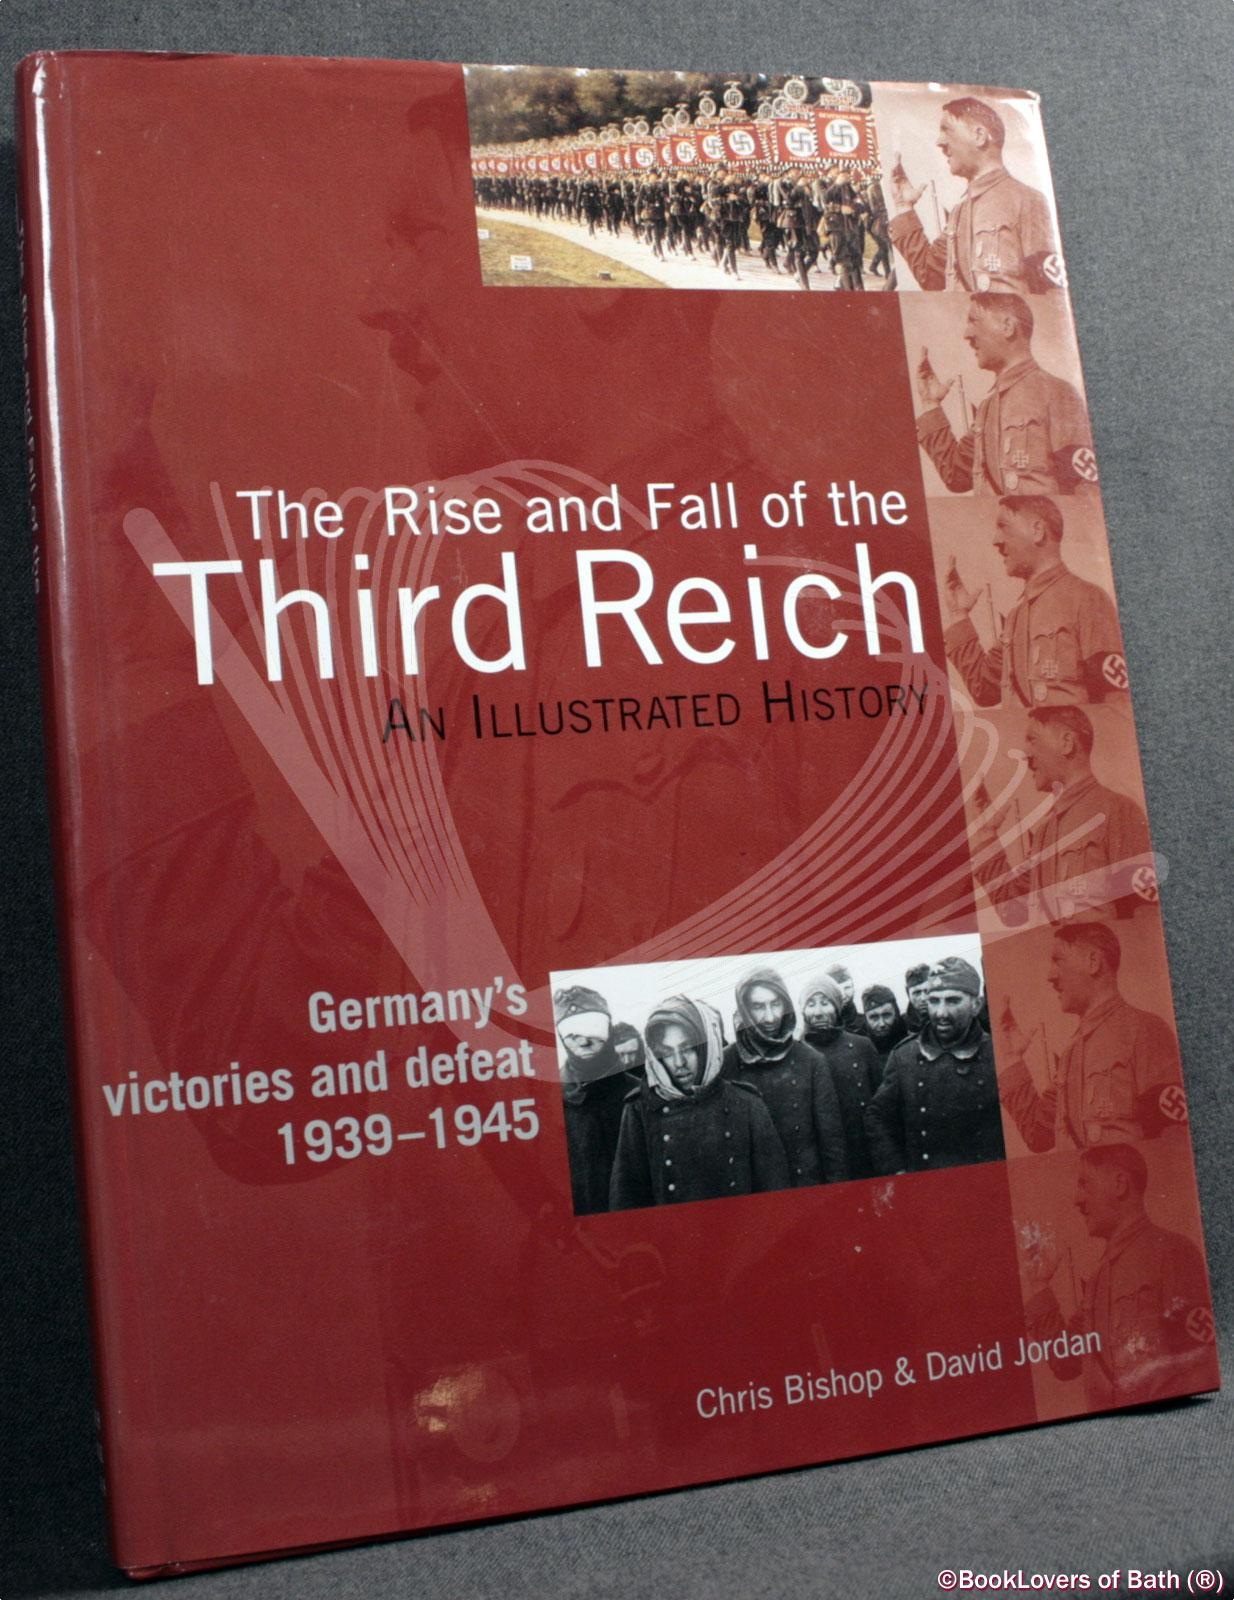 The Rise and Fall of the Third Reich: An Illustrated History: Germany's Victories and Defeat 1939-1945 - Chris Bishop & David Jordan